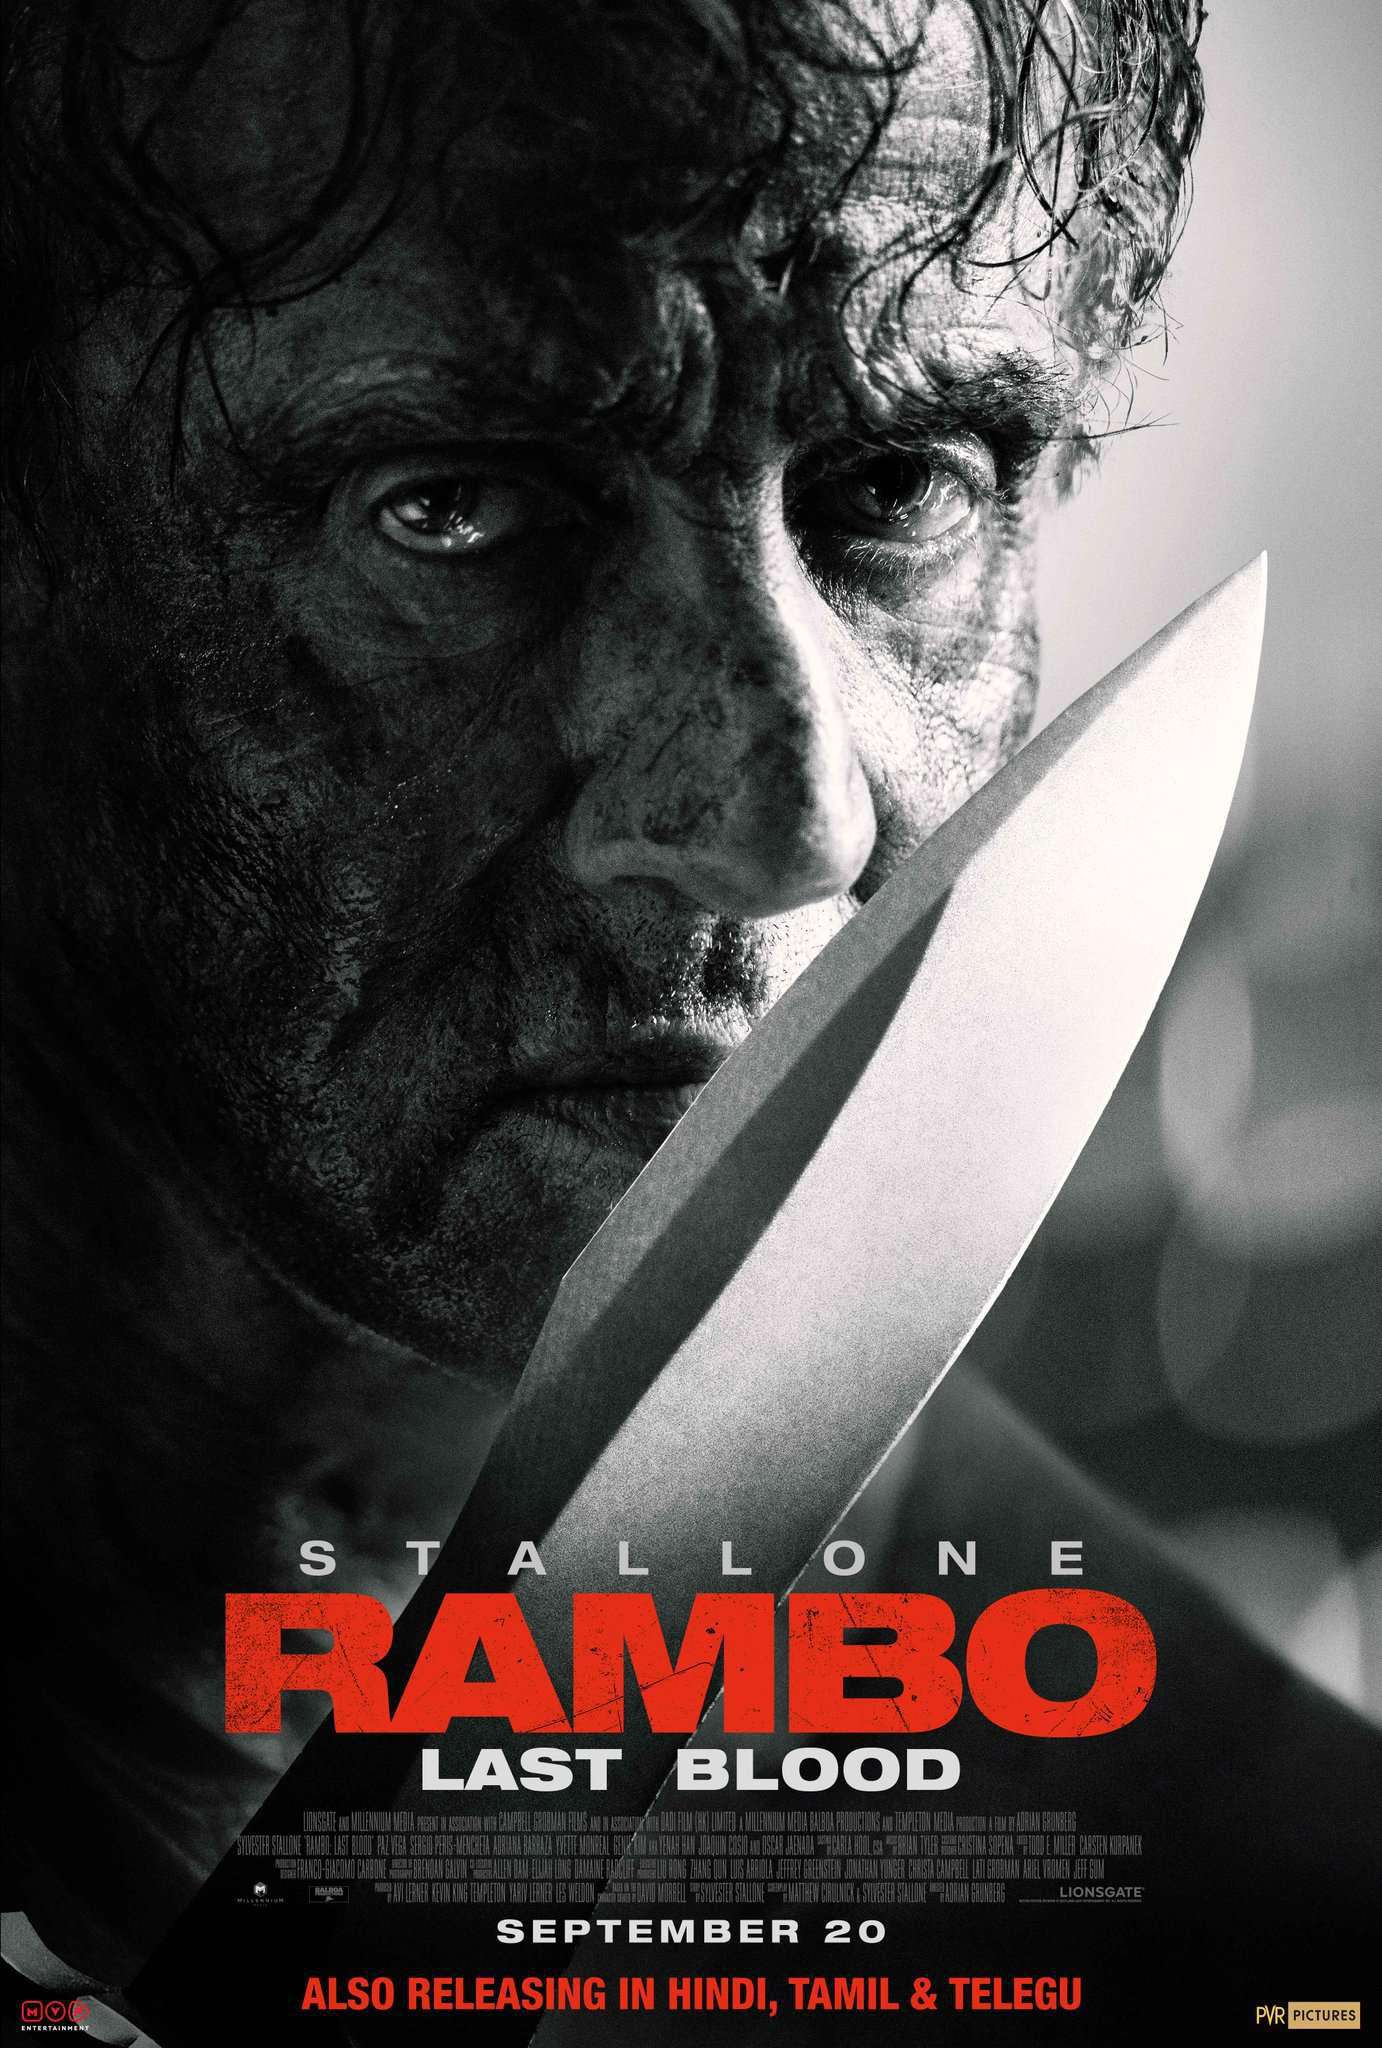 Rambo 5: Last Blood Movie Watch Online   Find Where to Stream Full Movie in HD @ 24reel